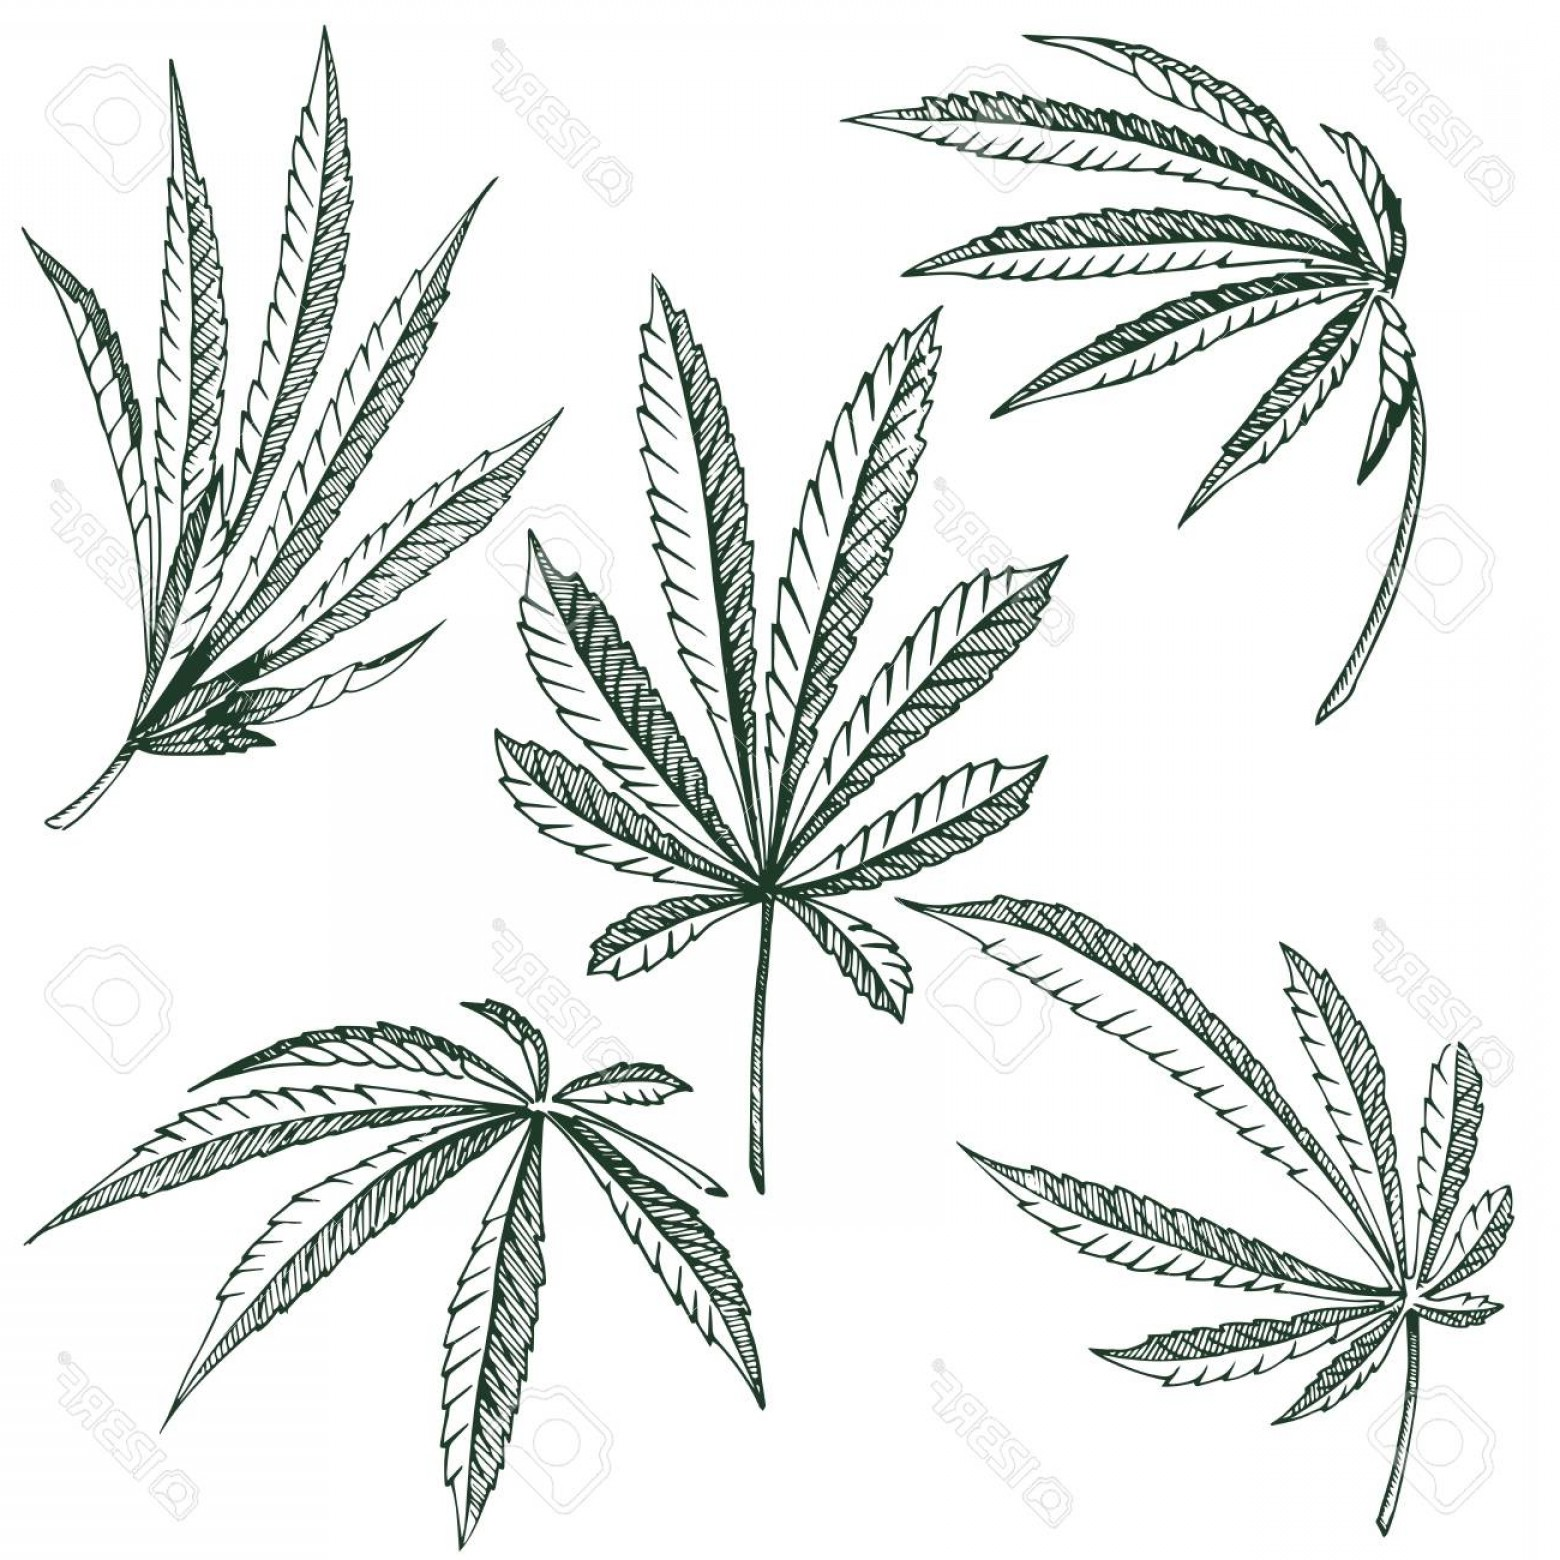 Black And White Vector Image Of Weed Plants: Photostock Illustration Vector Hemp Plant Illustrations Set Of Leaves Of Black And White Cannabis Isolated Clip Art